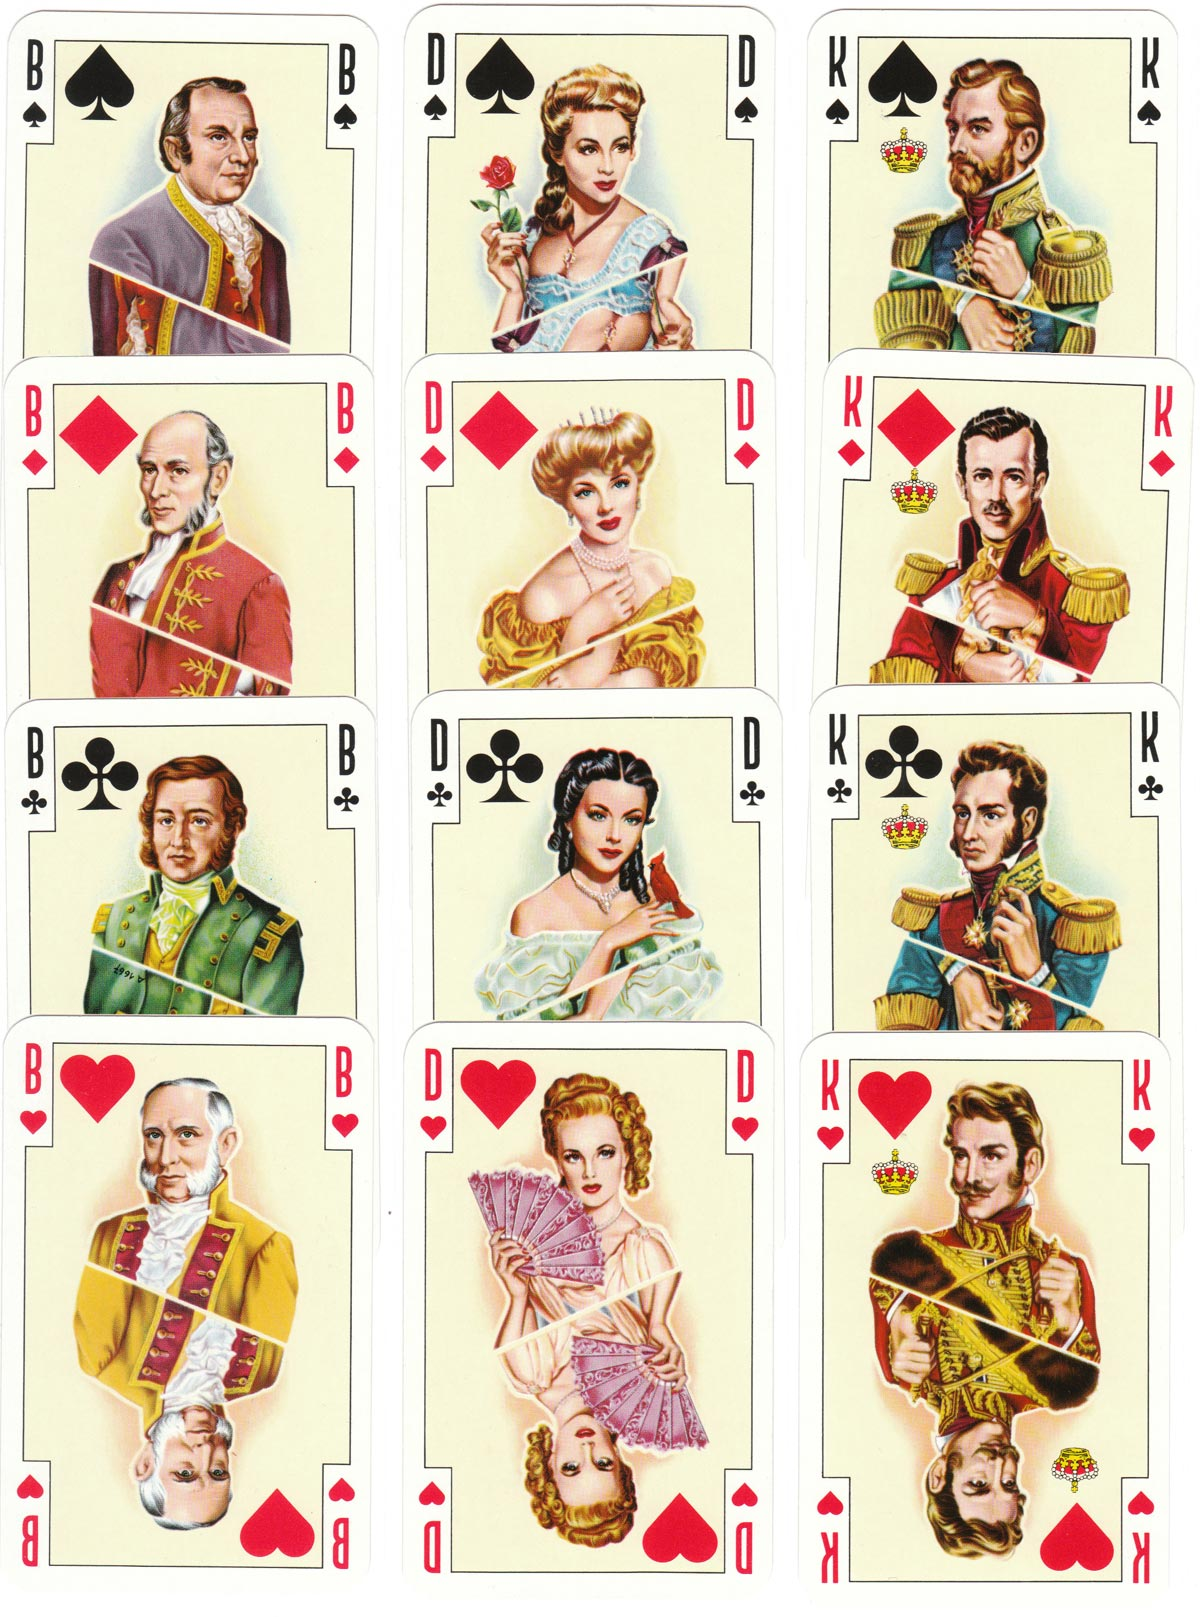 Renovation 2.000 playing cards manufactured by A.S.S., c.1958